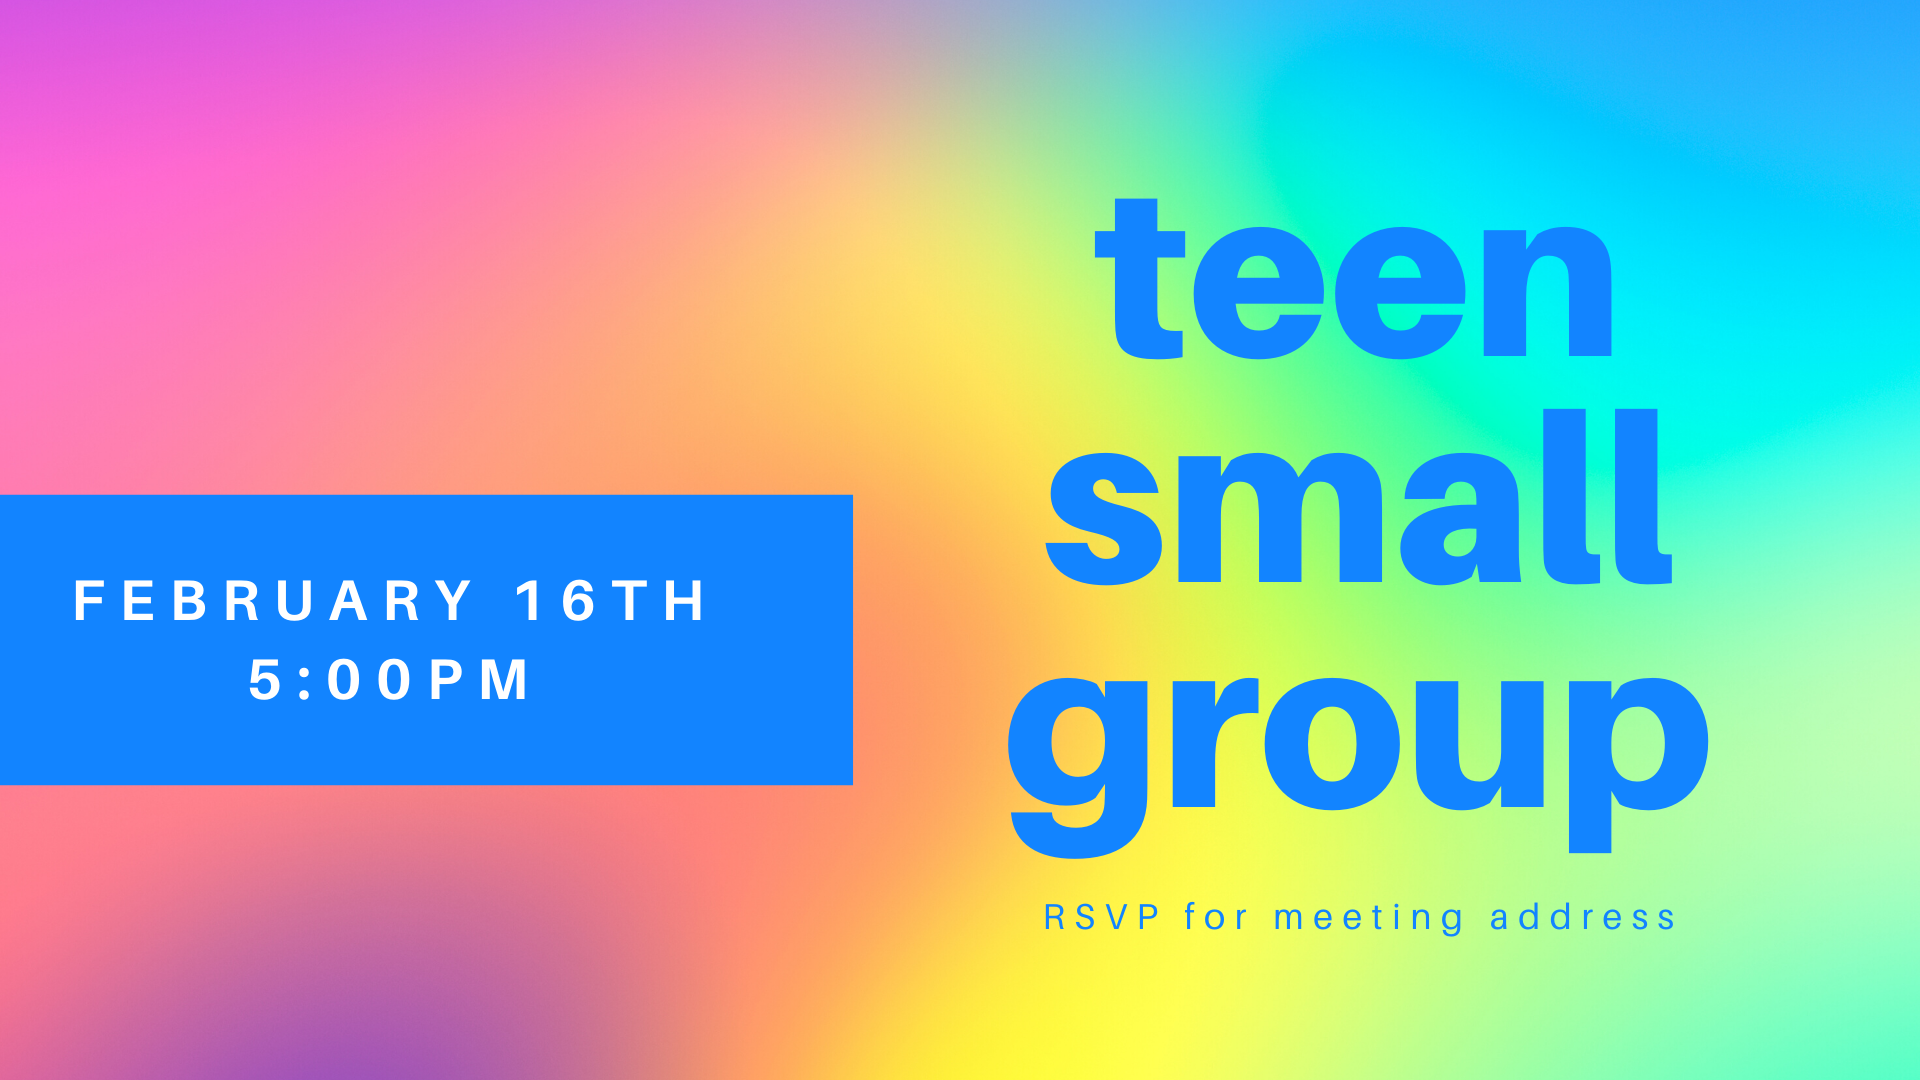 Teen Small Group